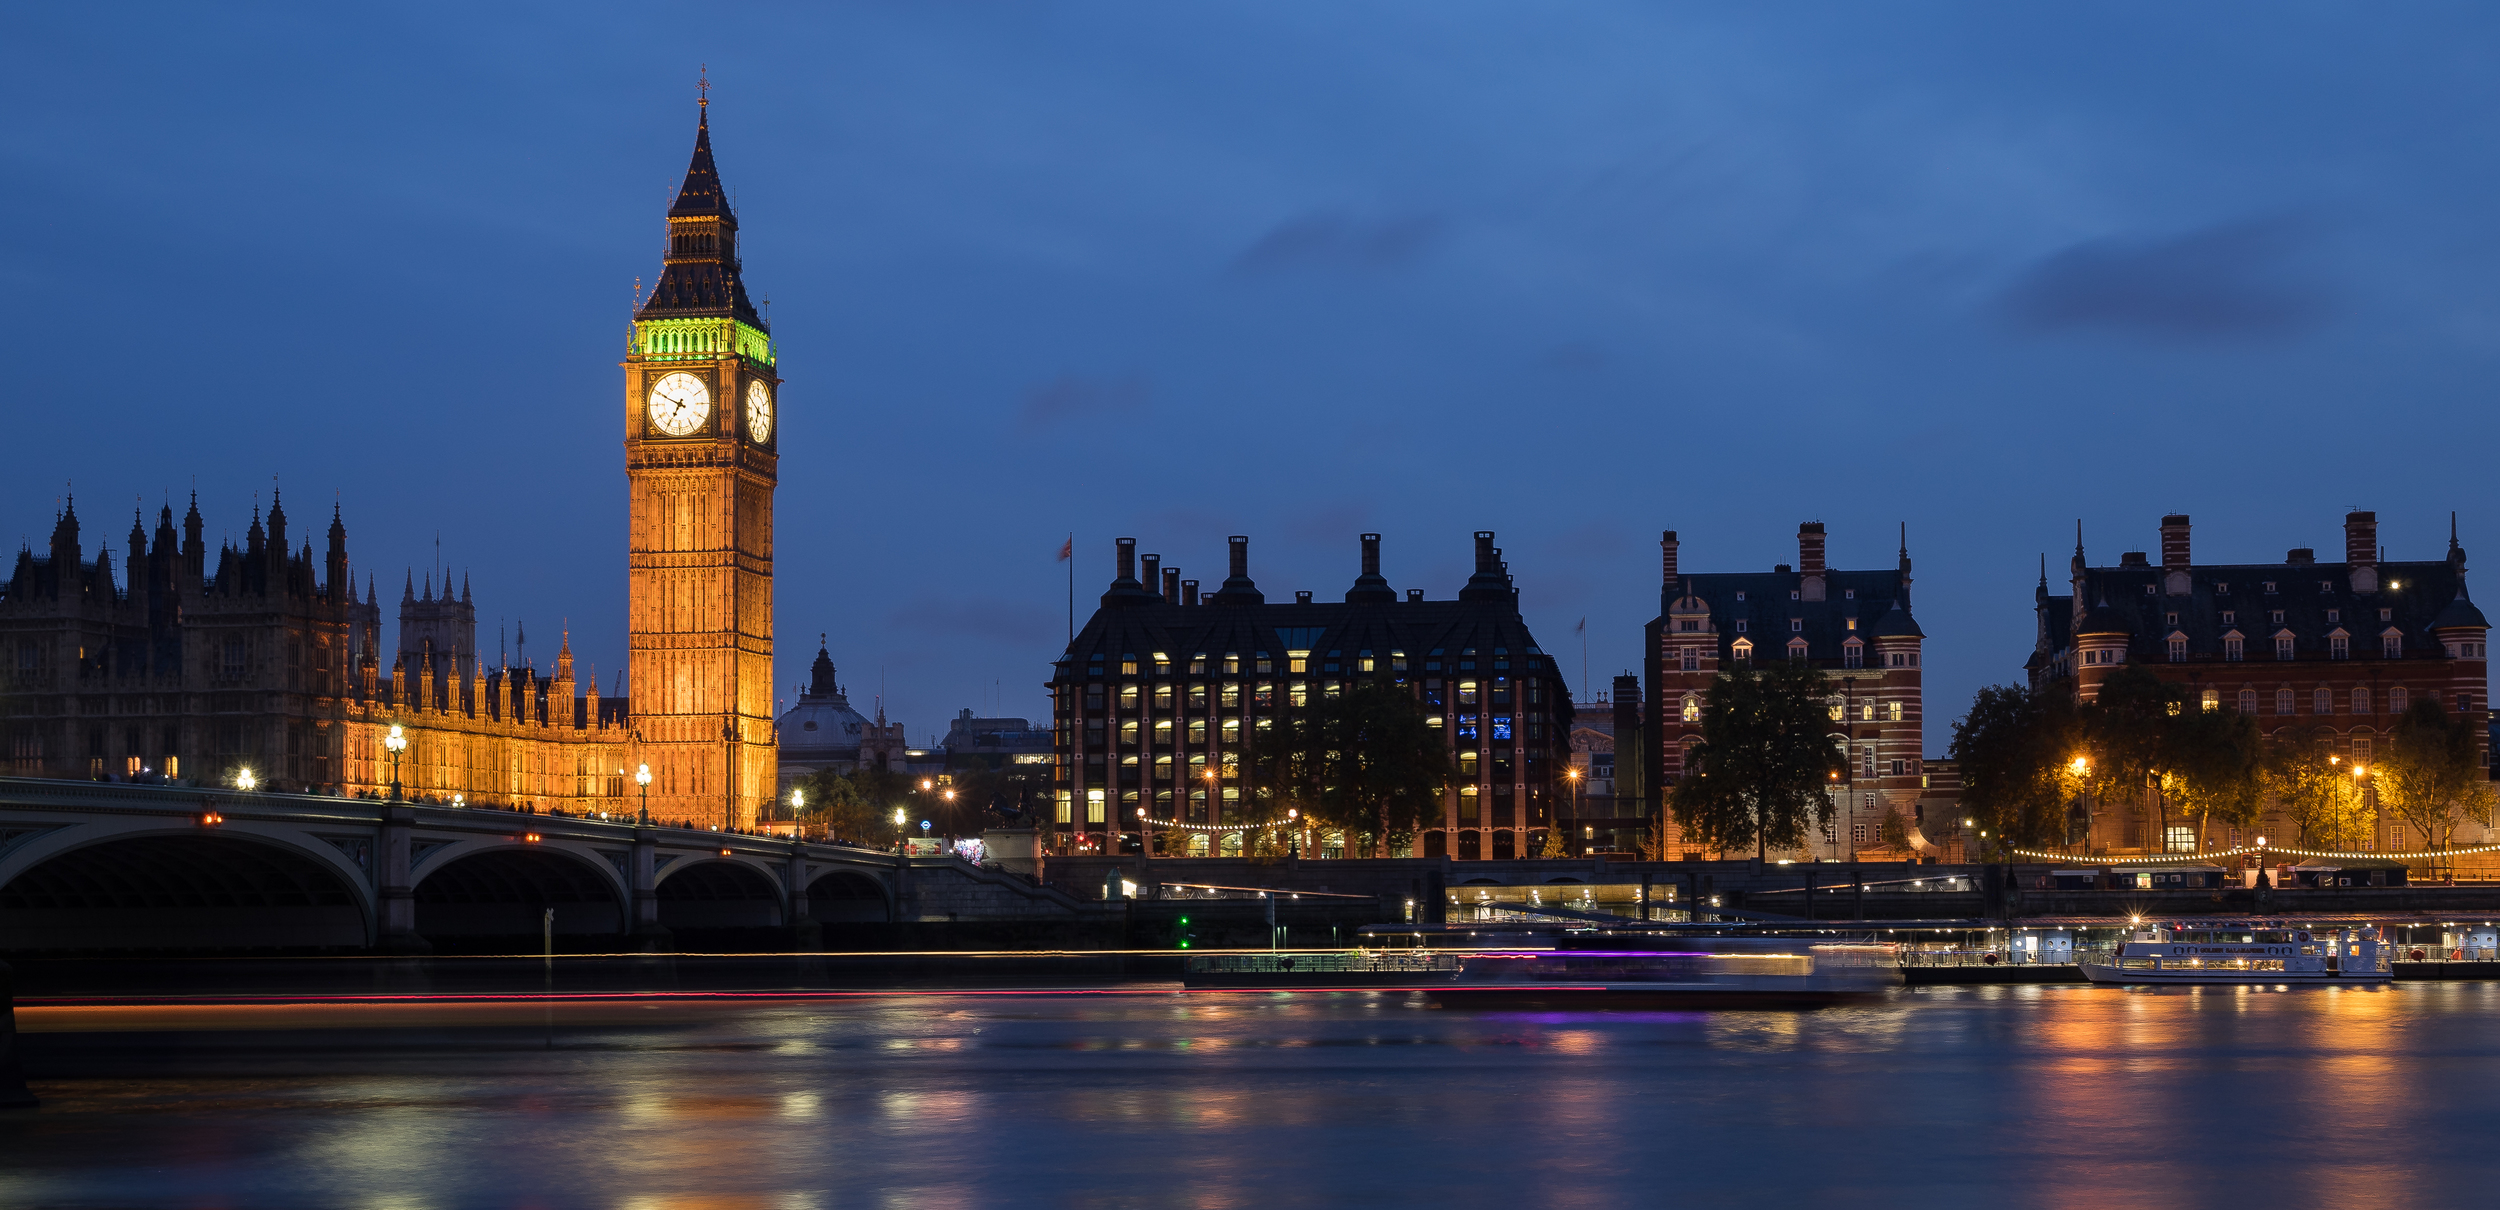 BIG BEN BY FRANKIEBOYPHOTOGRAPHY.COM // MEETYOUTHERE TRAVEL BLOG